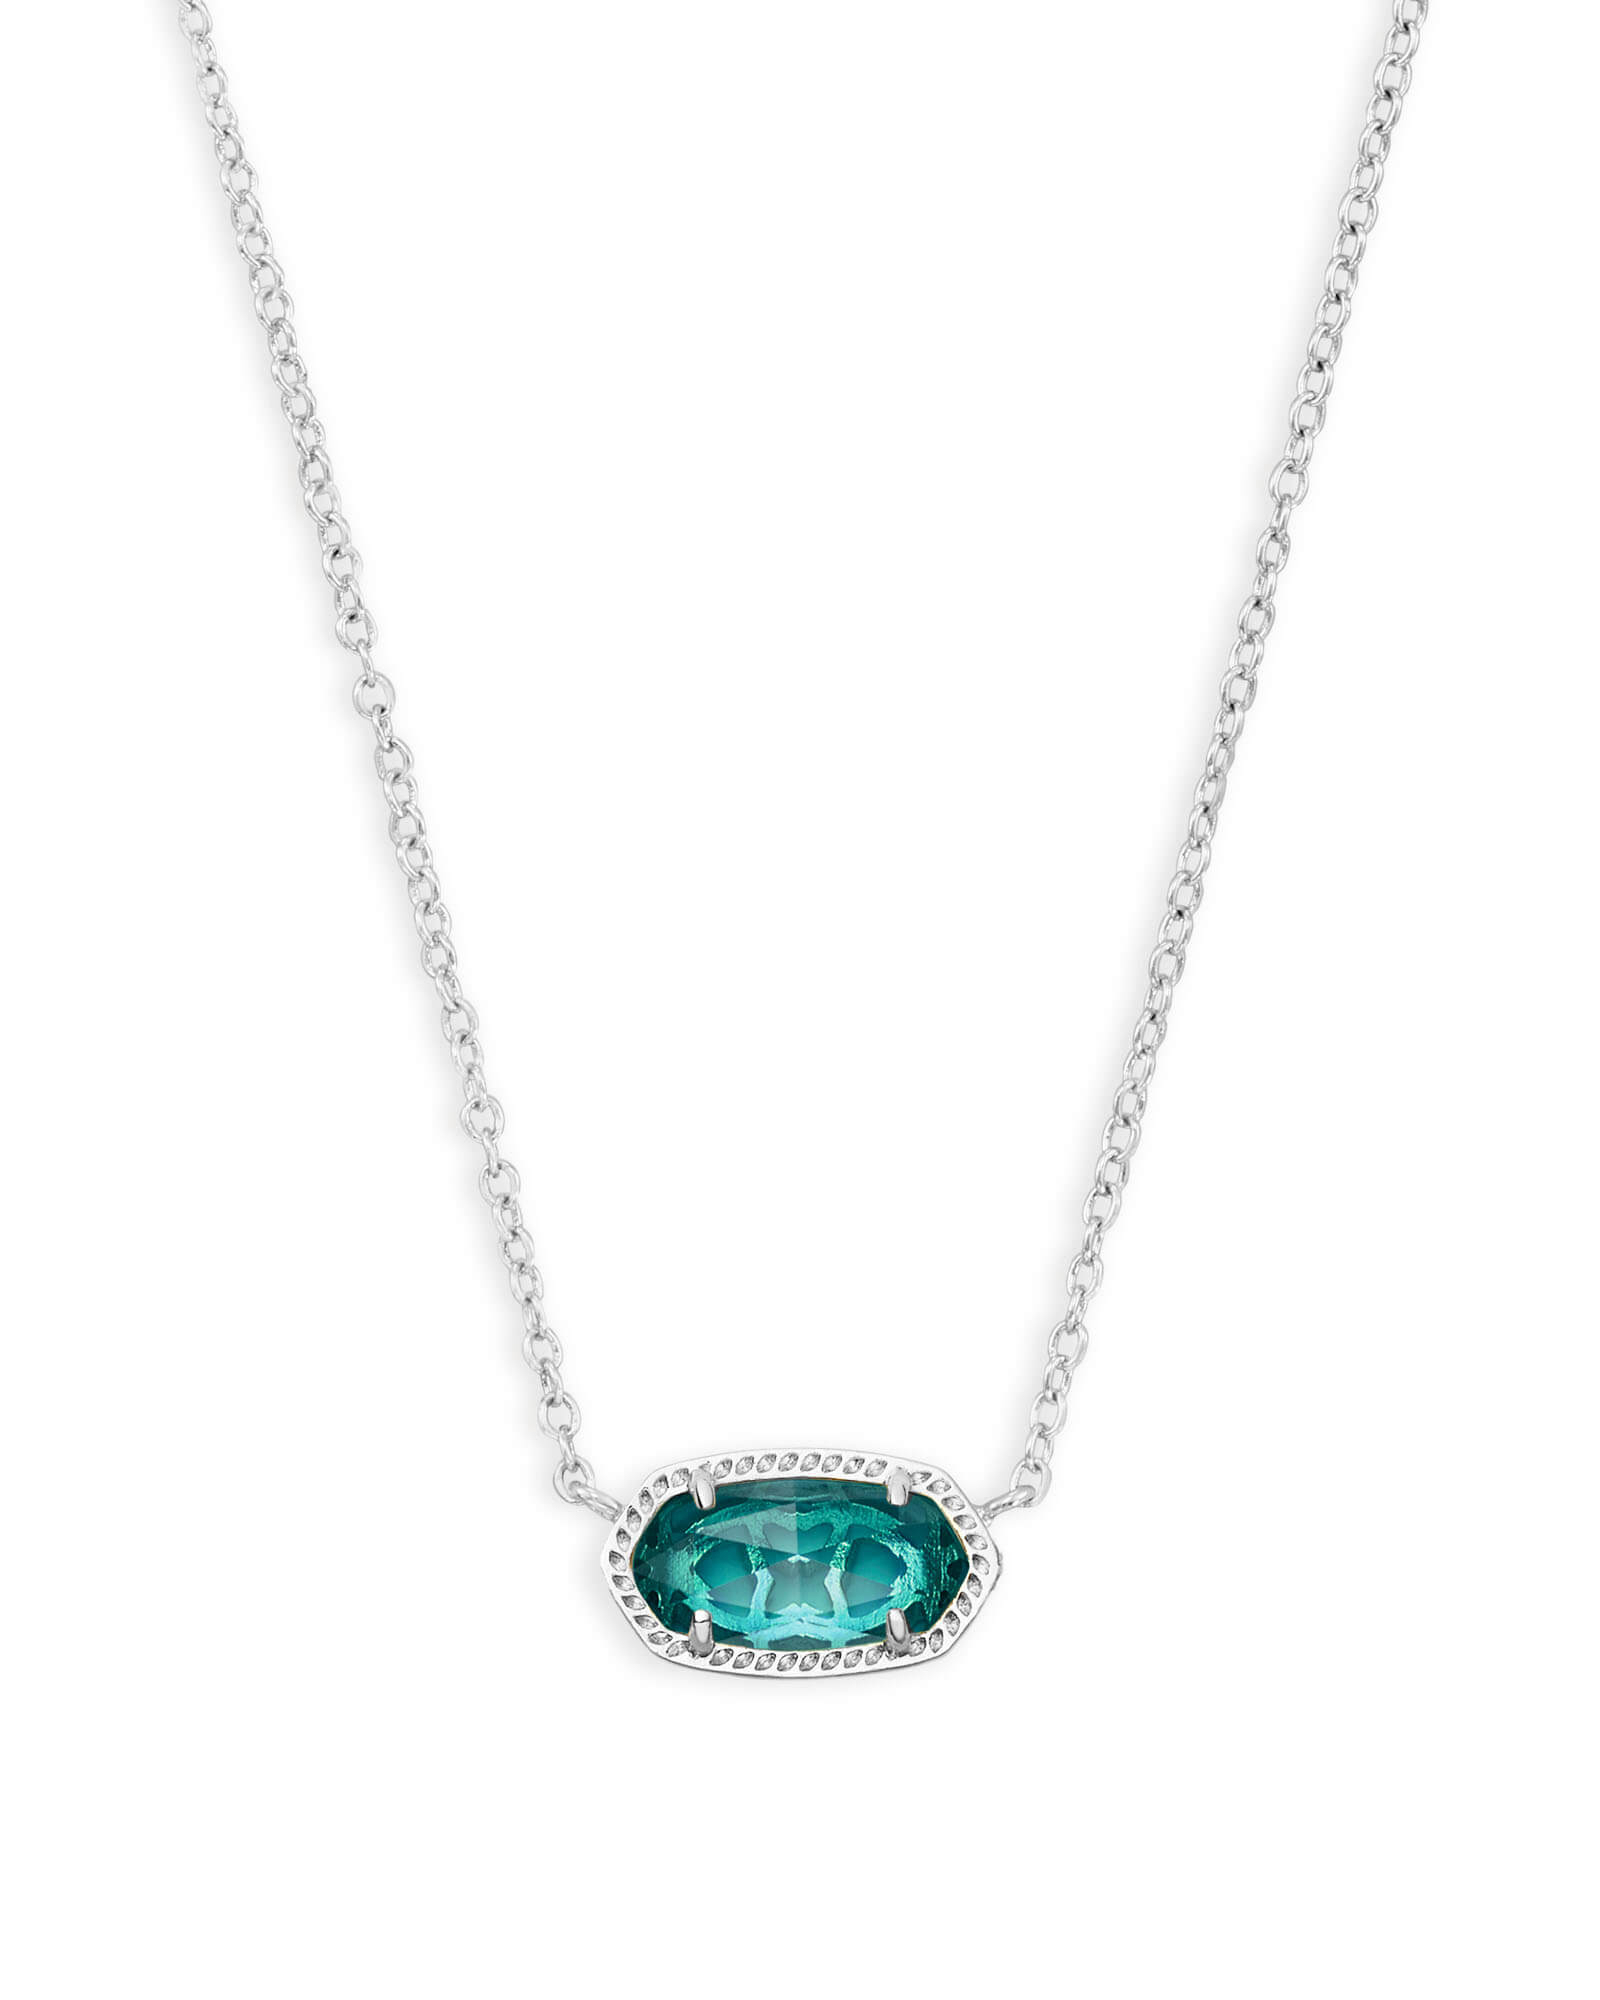 Elisa Silver Pendant Necklace In London Blue | Kendra Scott In Newest London Blue Crystal December Droplet Pendant Necklaces (View 13 of 25)